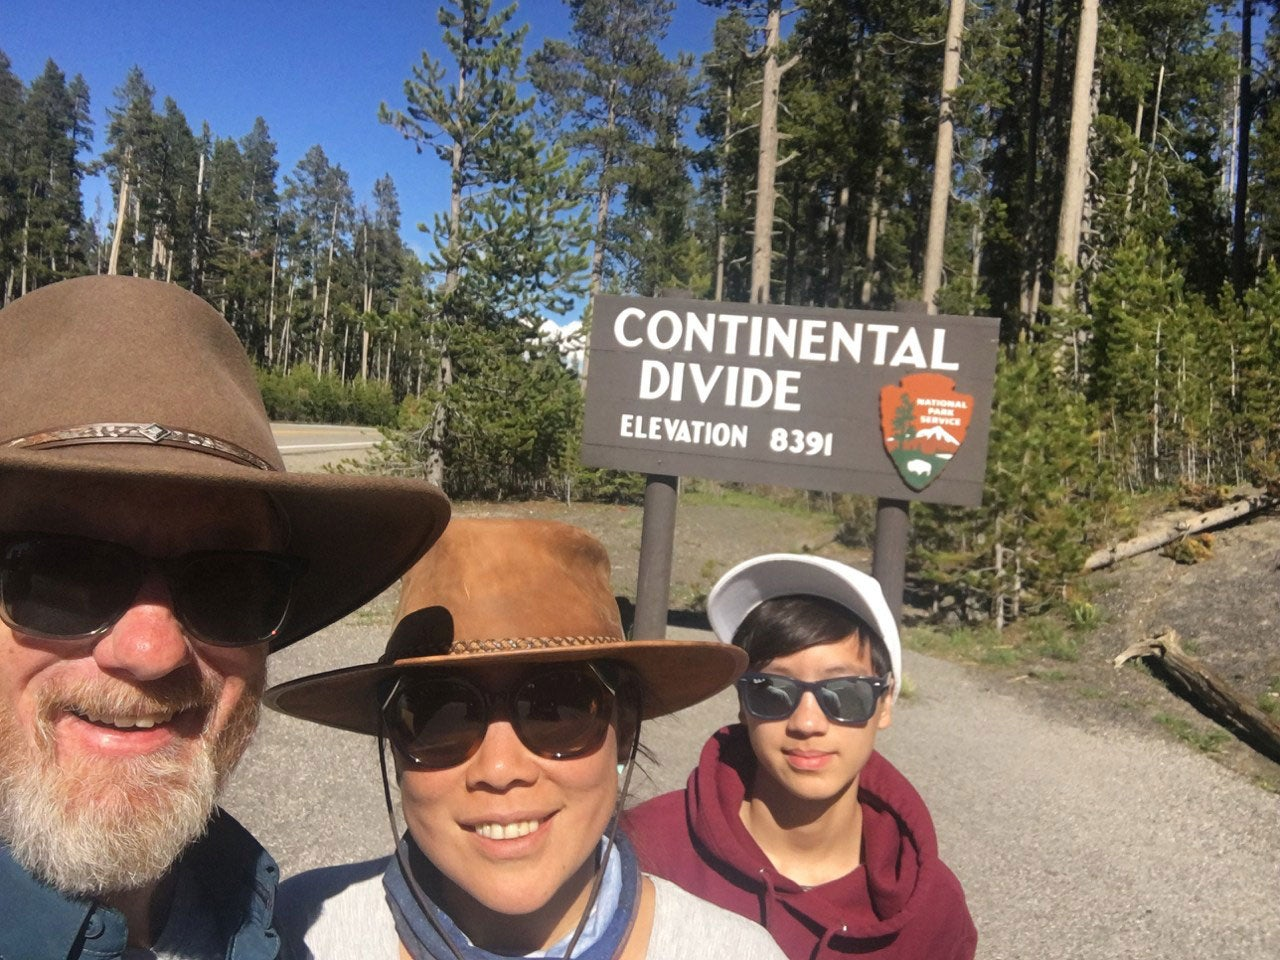 three people in front of a NPS sign for the continental divide